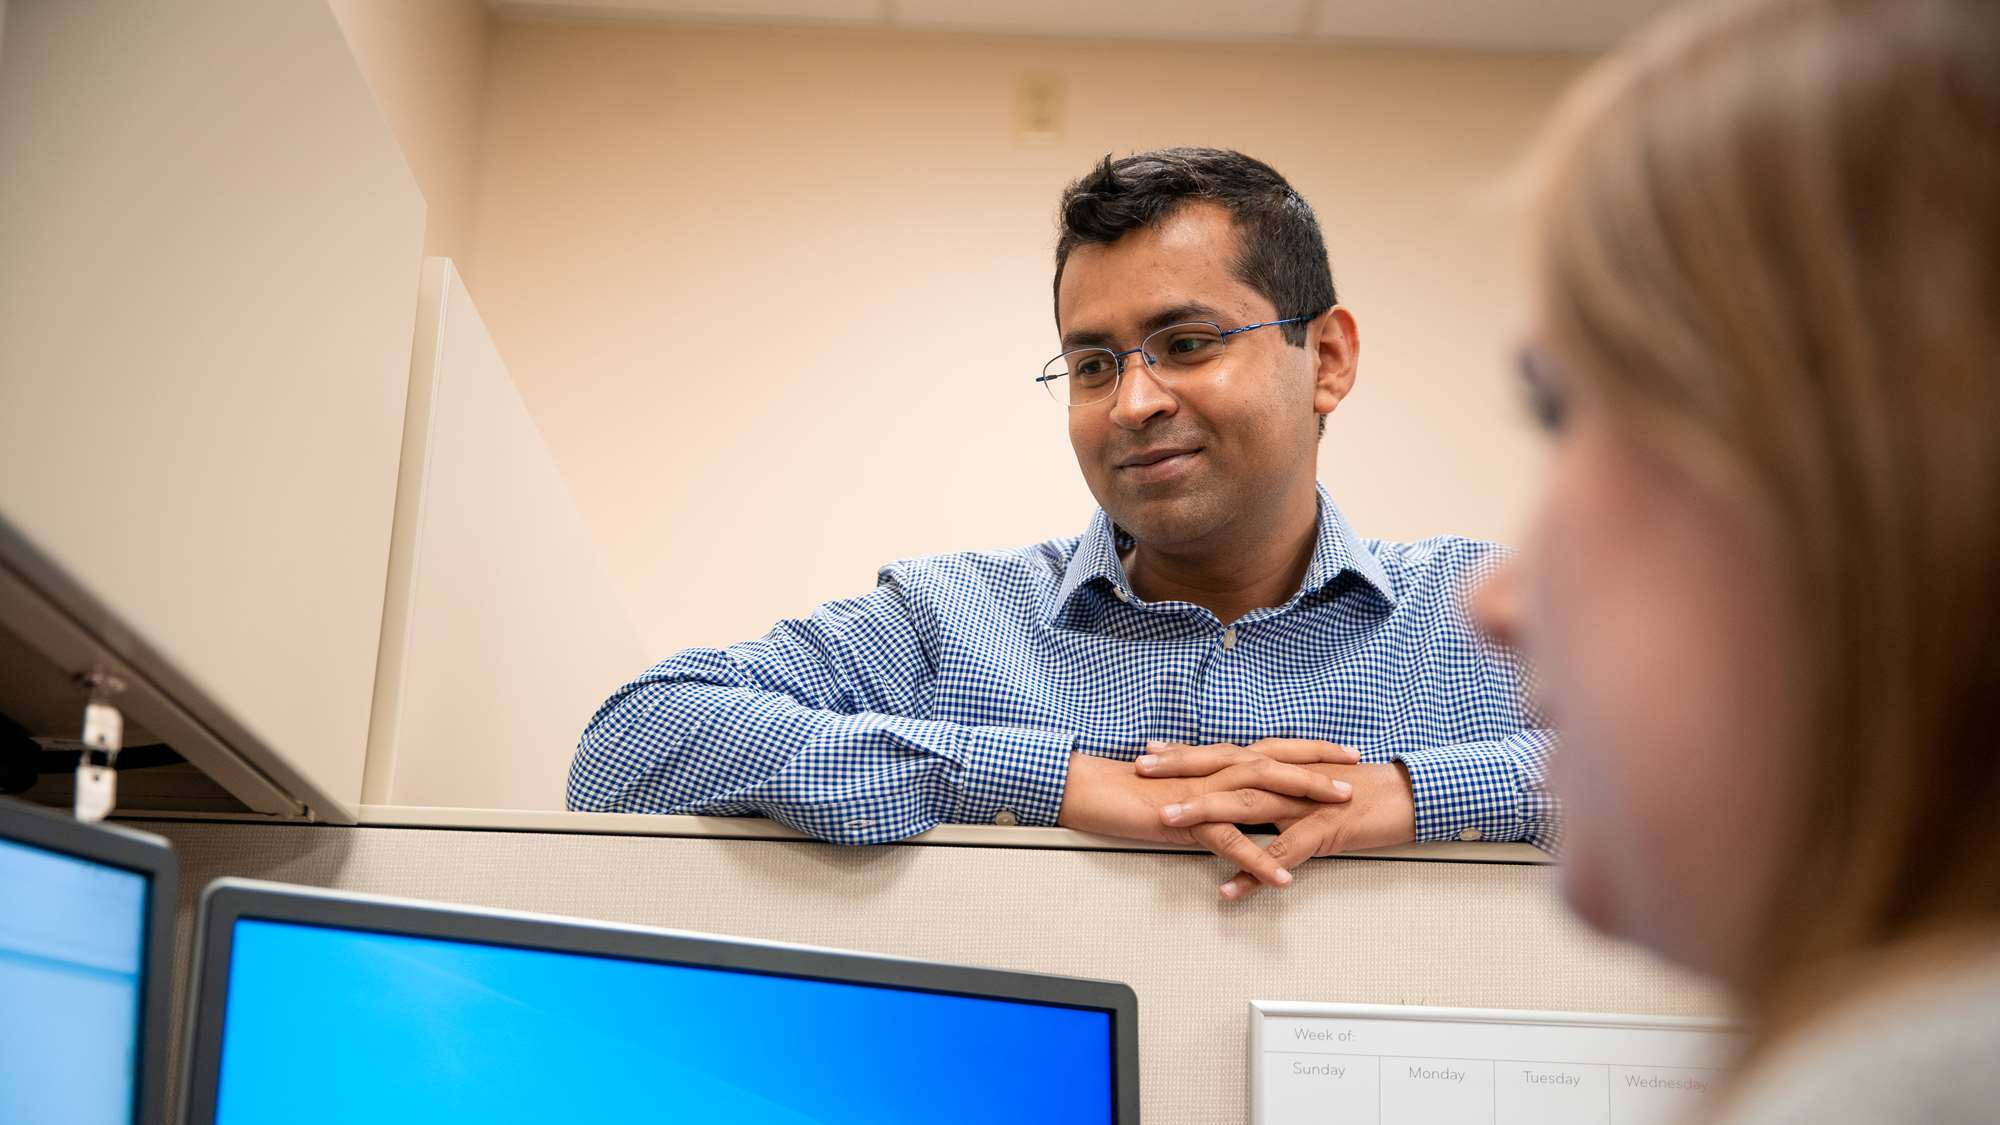 Doctoral student Raihan Khan provides mentorship to a fellow student.